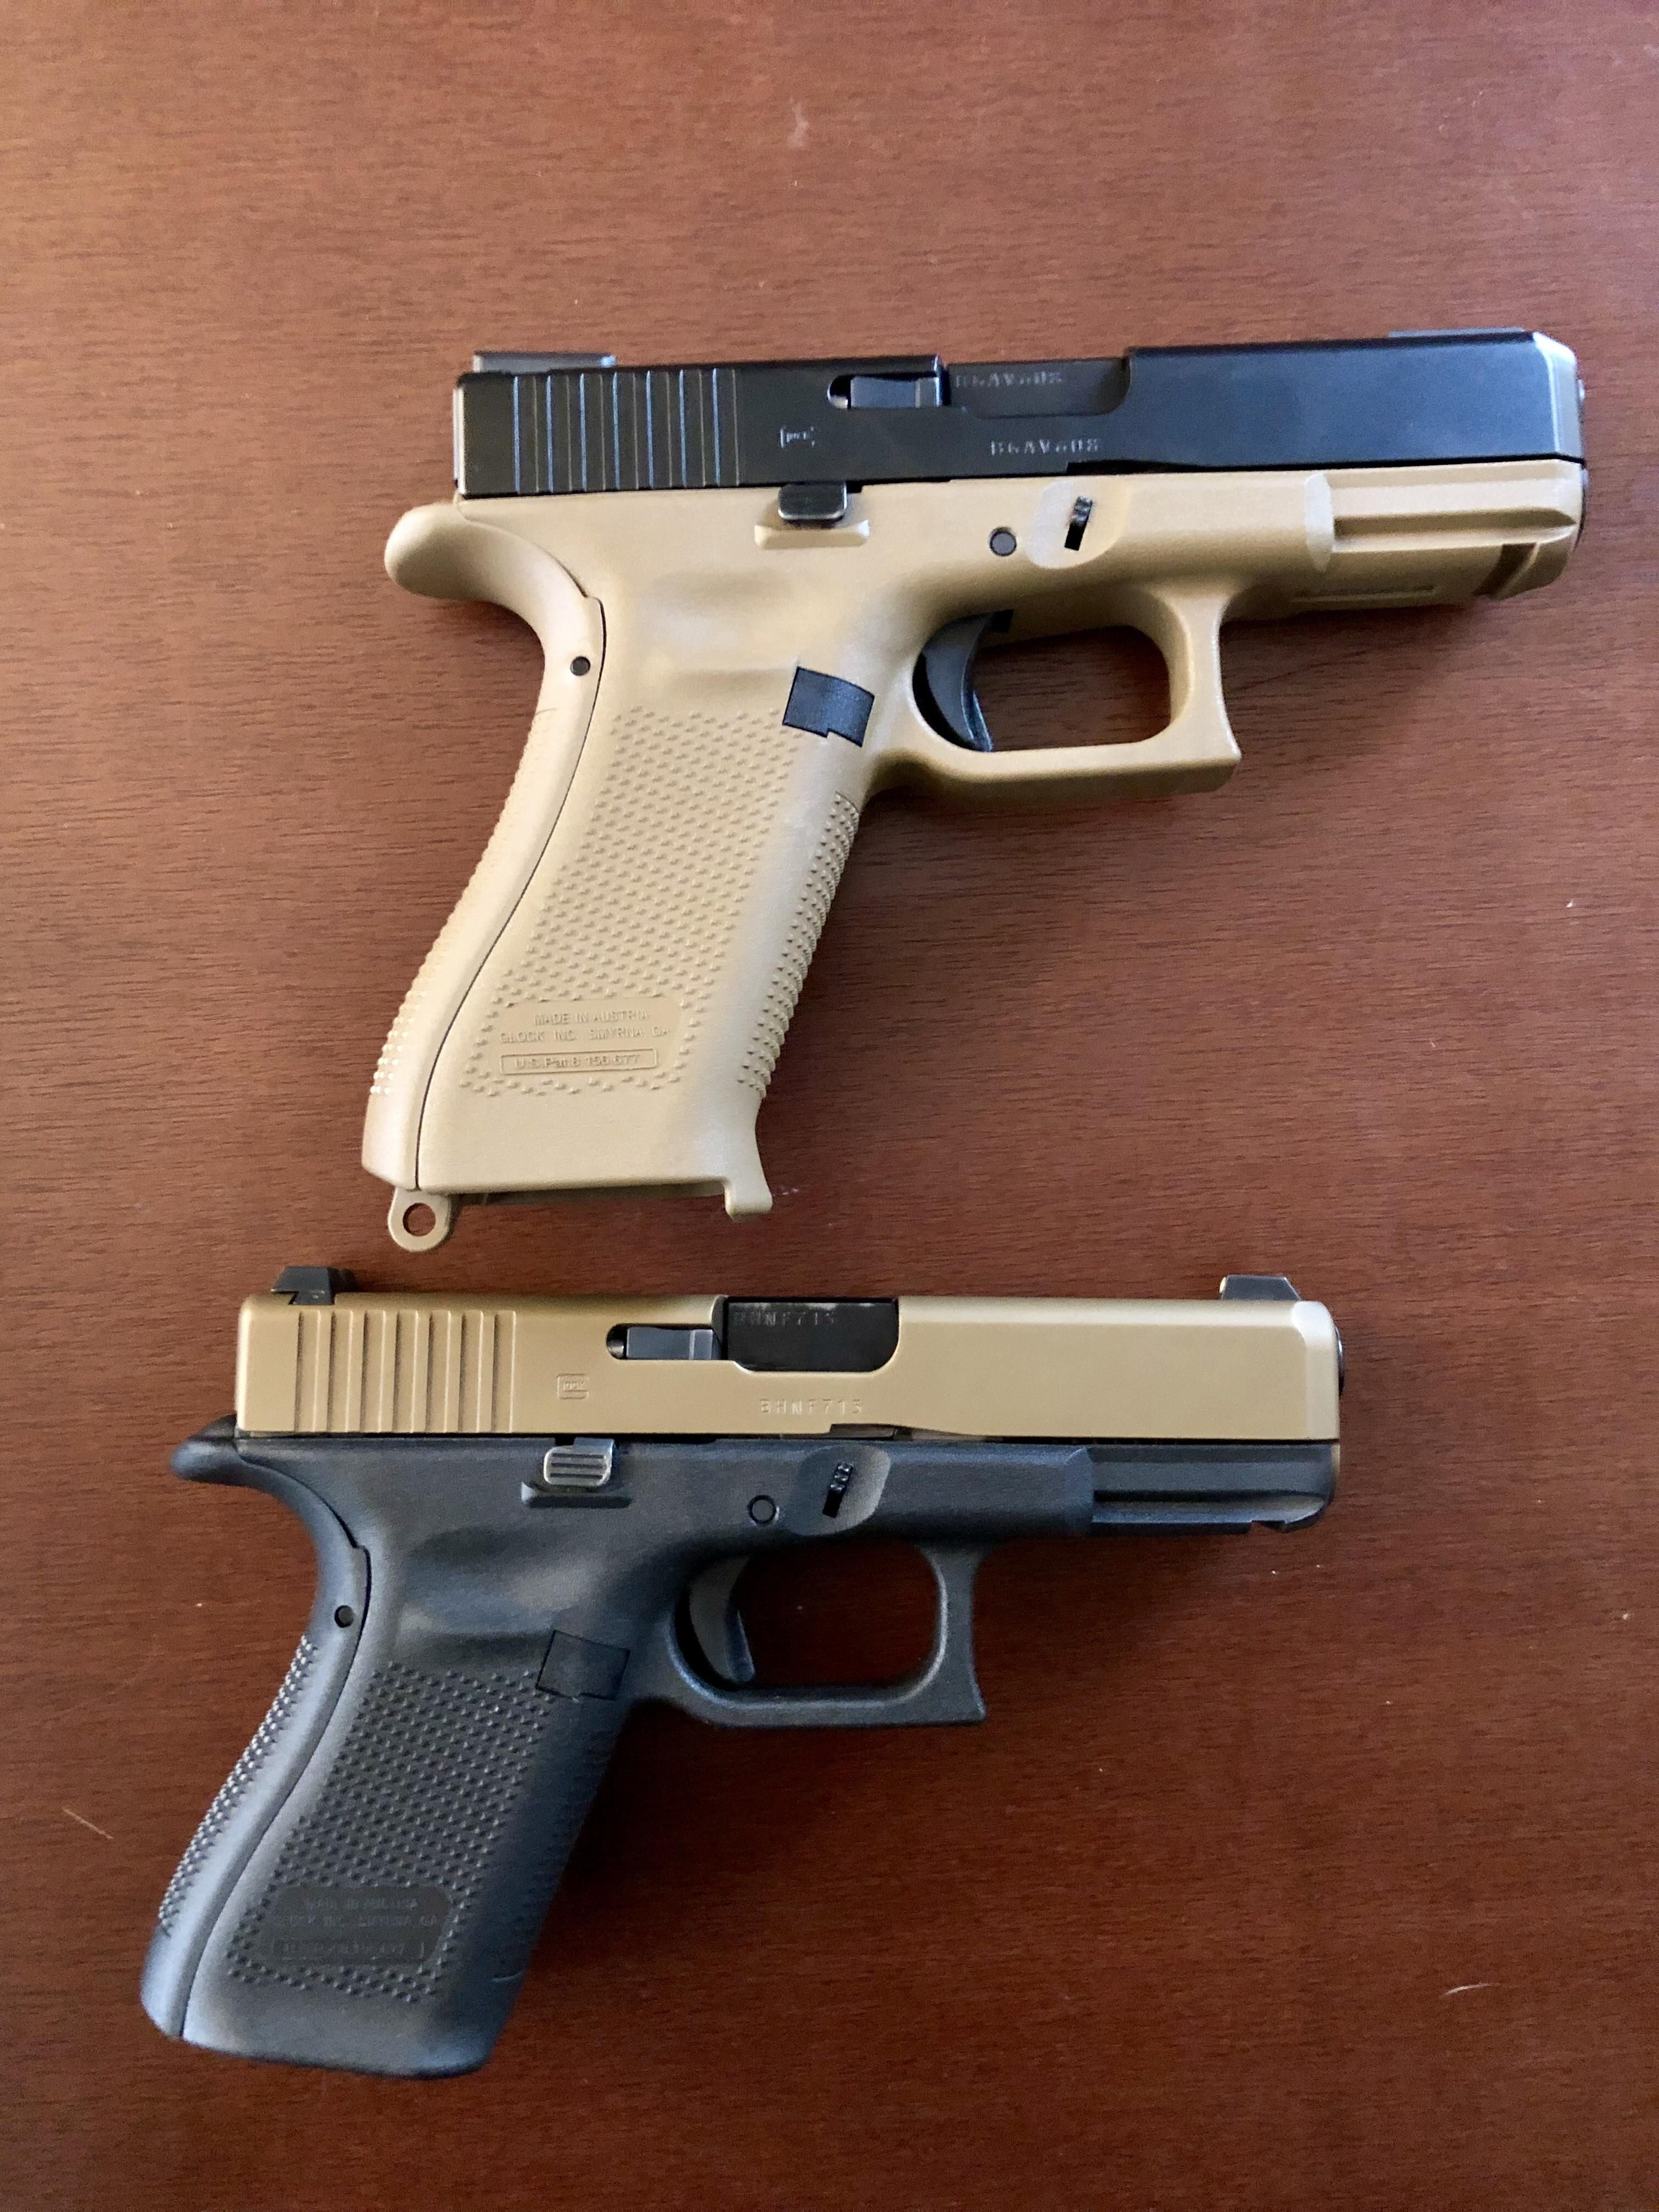 Swapped slides with a Gen 5 Glock 19 and a 19X  kinda wish they